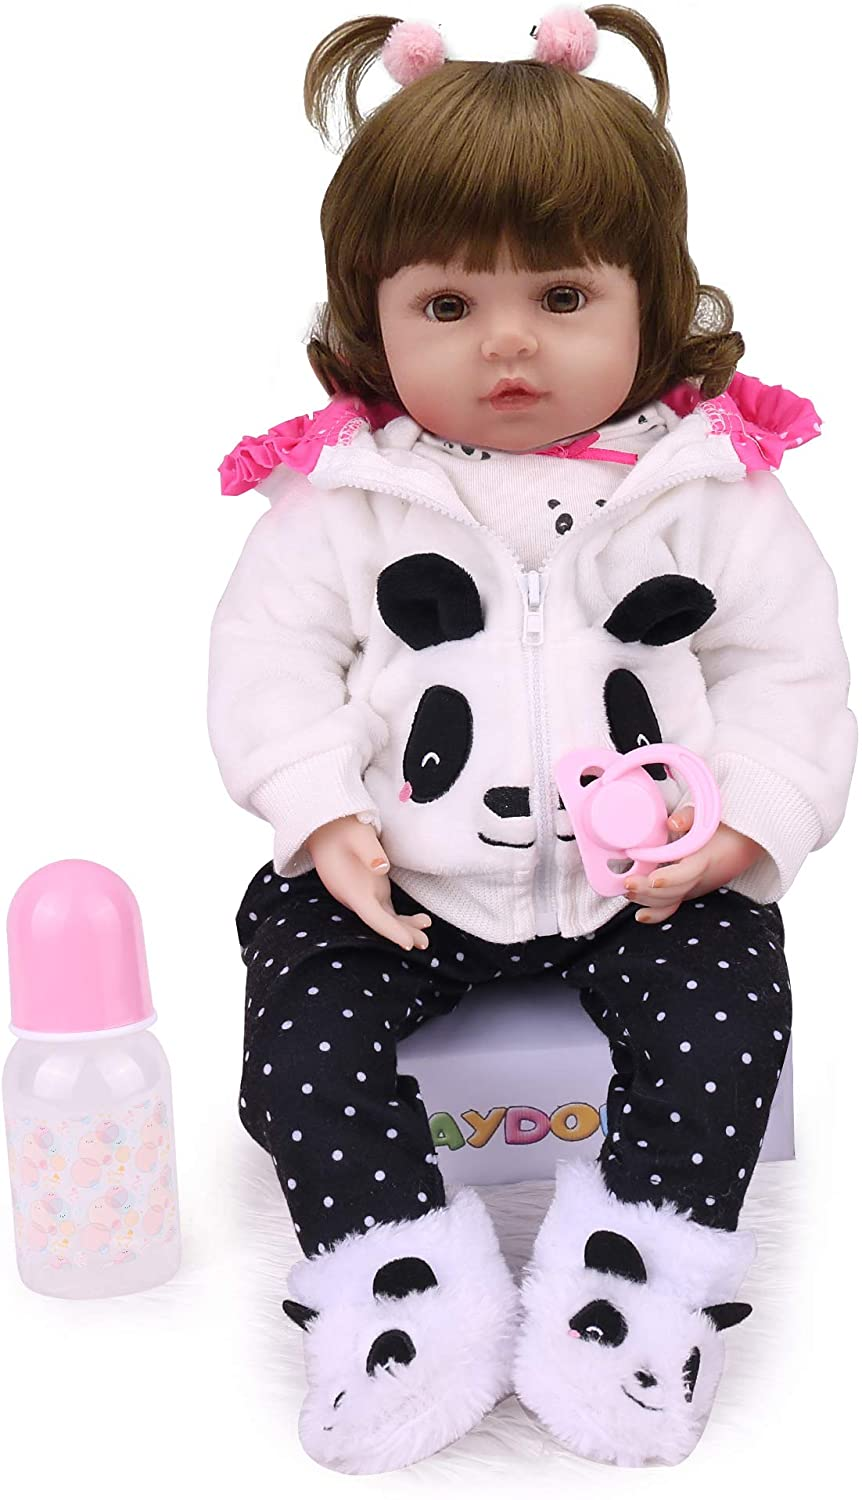 Kaydora Reborn Baby Doll,Realistic Reborn Toddler Girl,22 inch Weighted Baby Doll